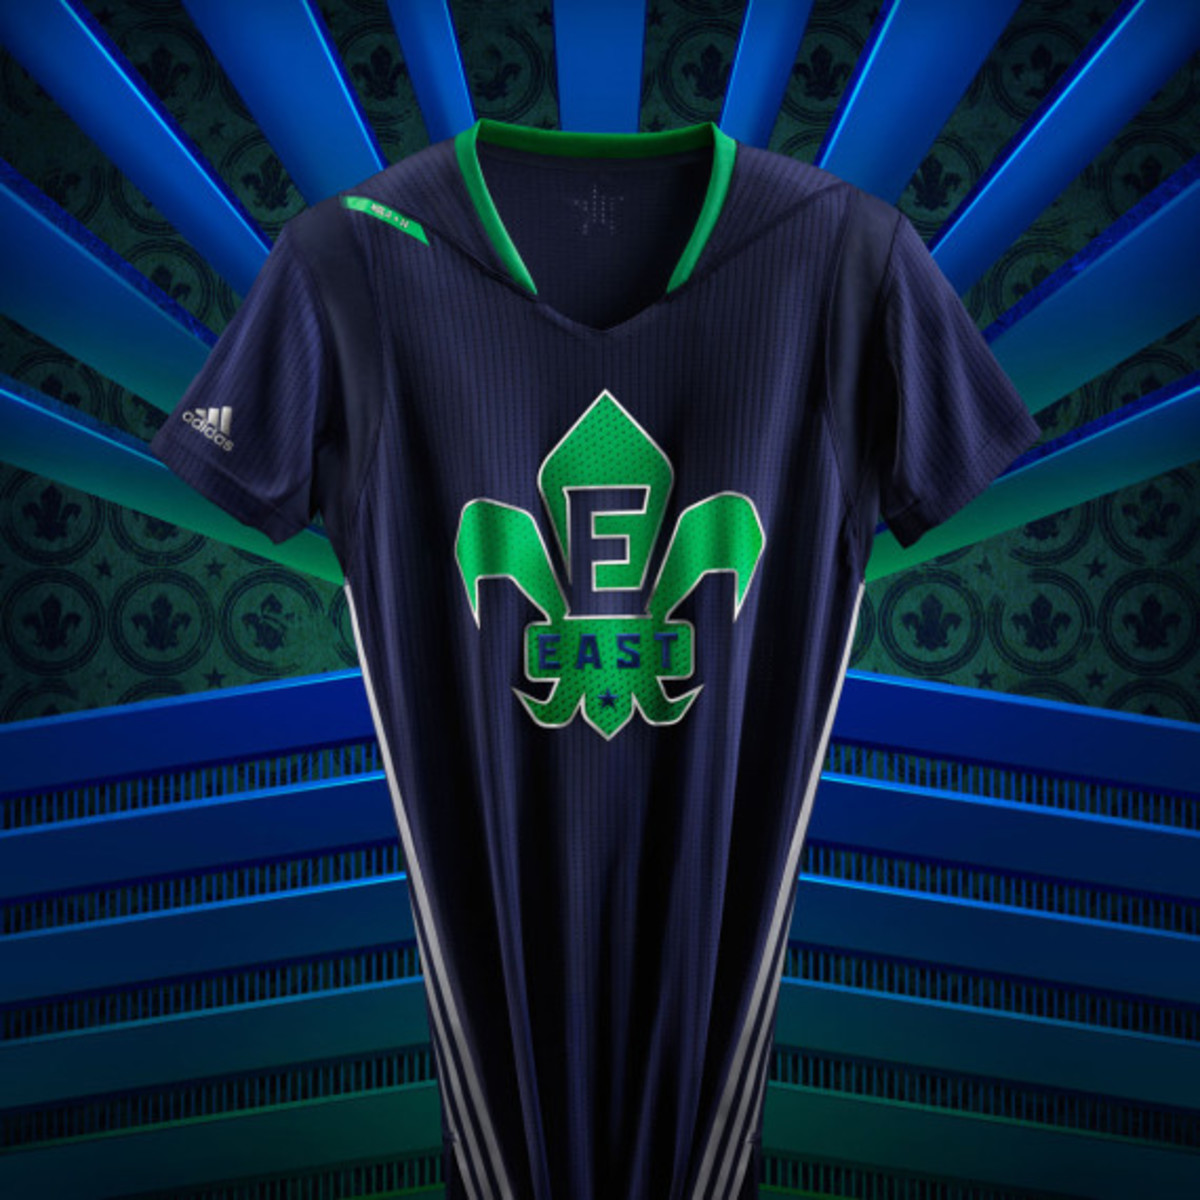 adidas-nba-2014-nba-all-star-game-uniforms-revealed-07